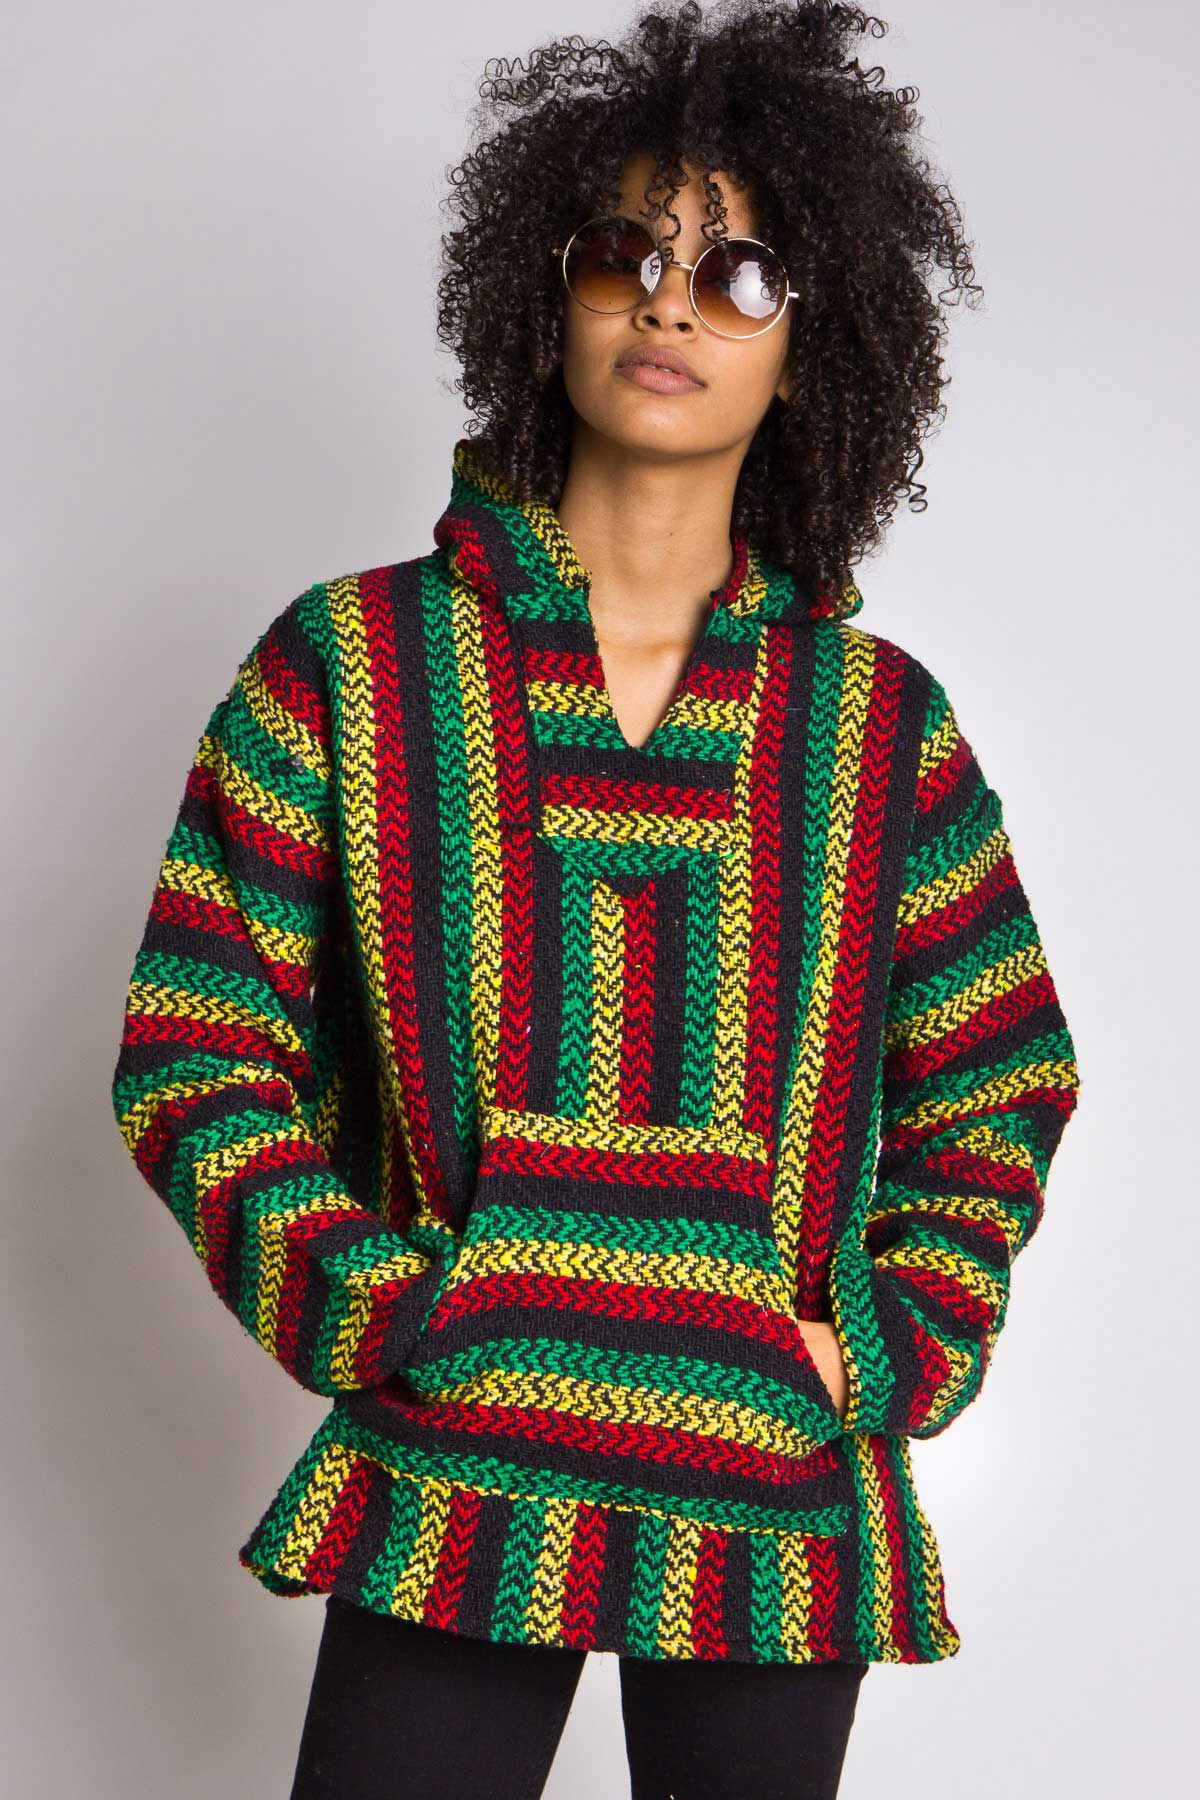 rugs drug and sweatshirts on for hippie pinterest hoodie girls boho baja images college life rug best